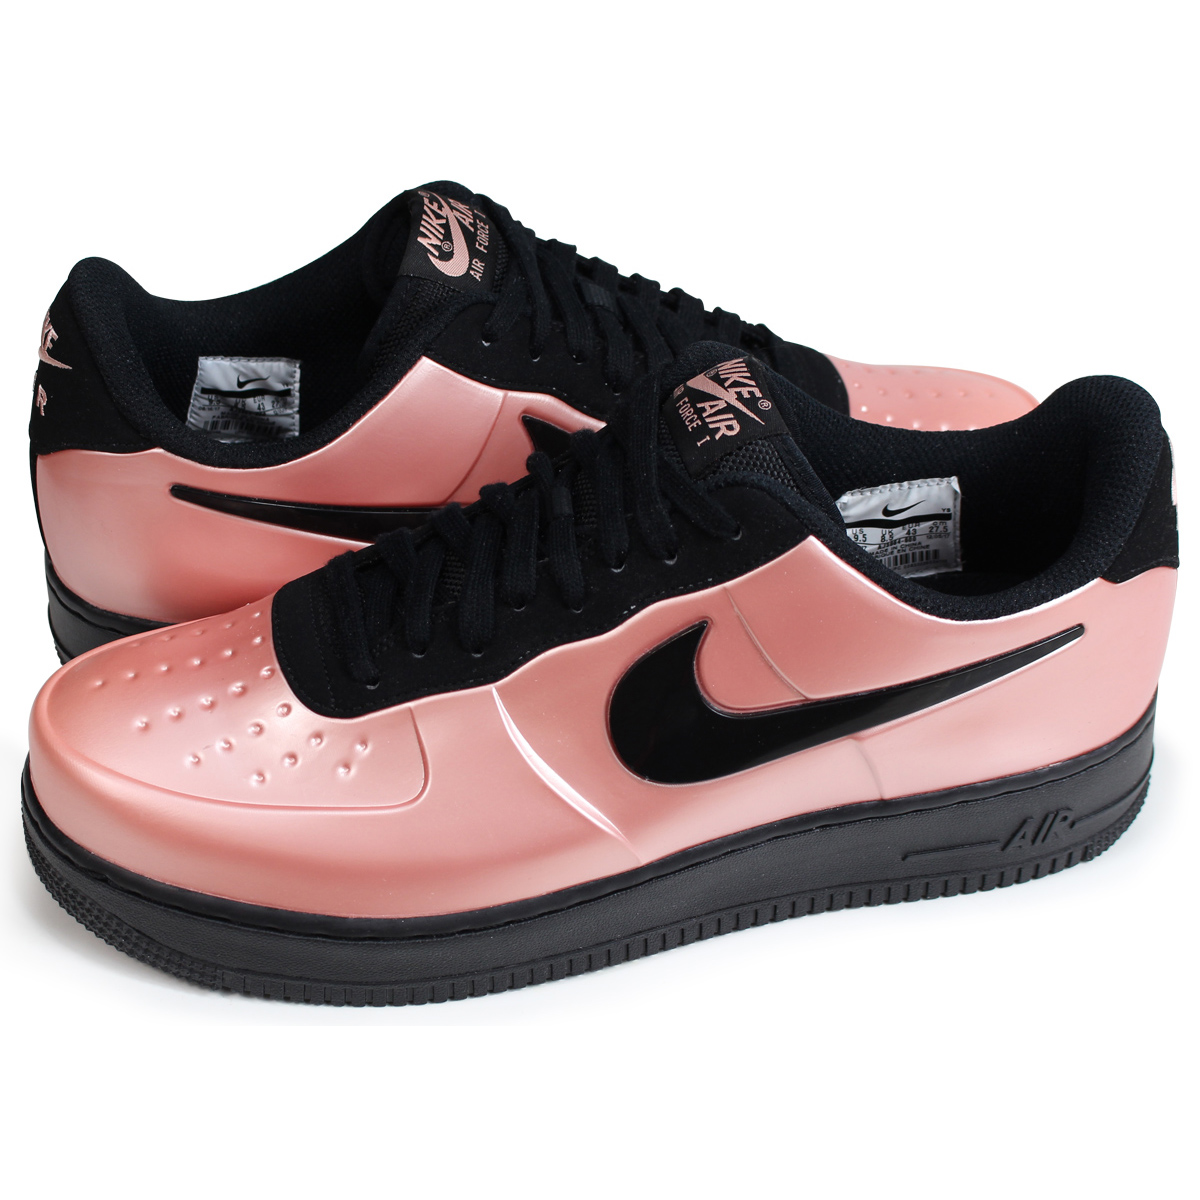 aa99ffab513a5 NIKE AIR FORCE 1 FOAMPOSITE PRO CUPSOLE Nike air force 1 フォームポジットスニーカーメンズ  AJ3664-600 pink  5 31 Shinnyu load